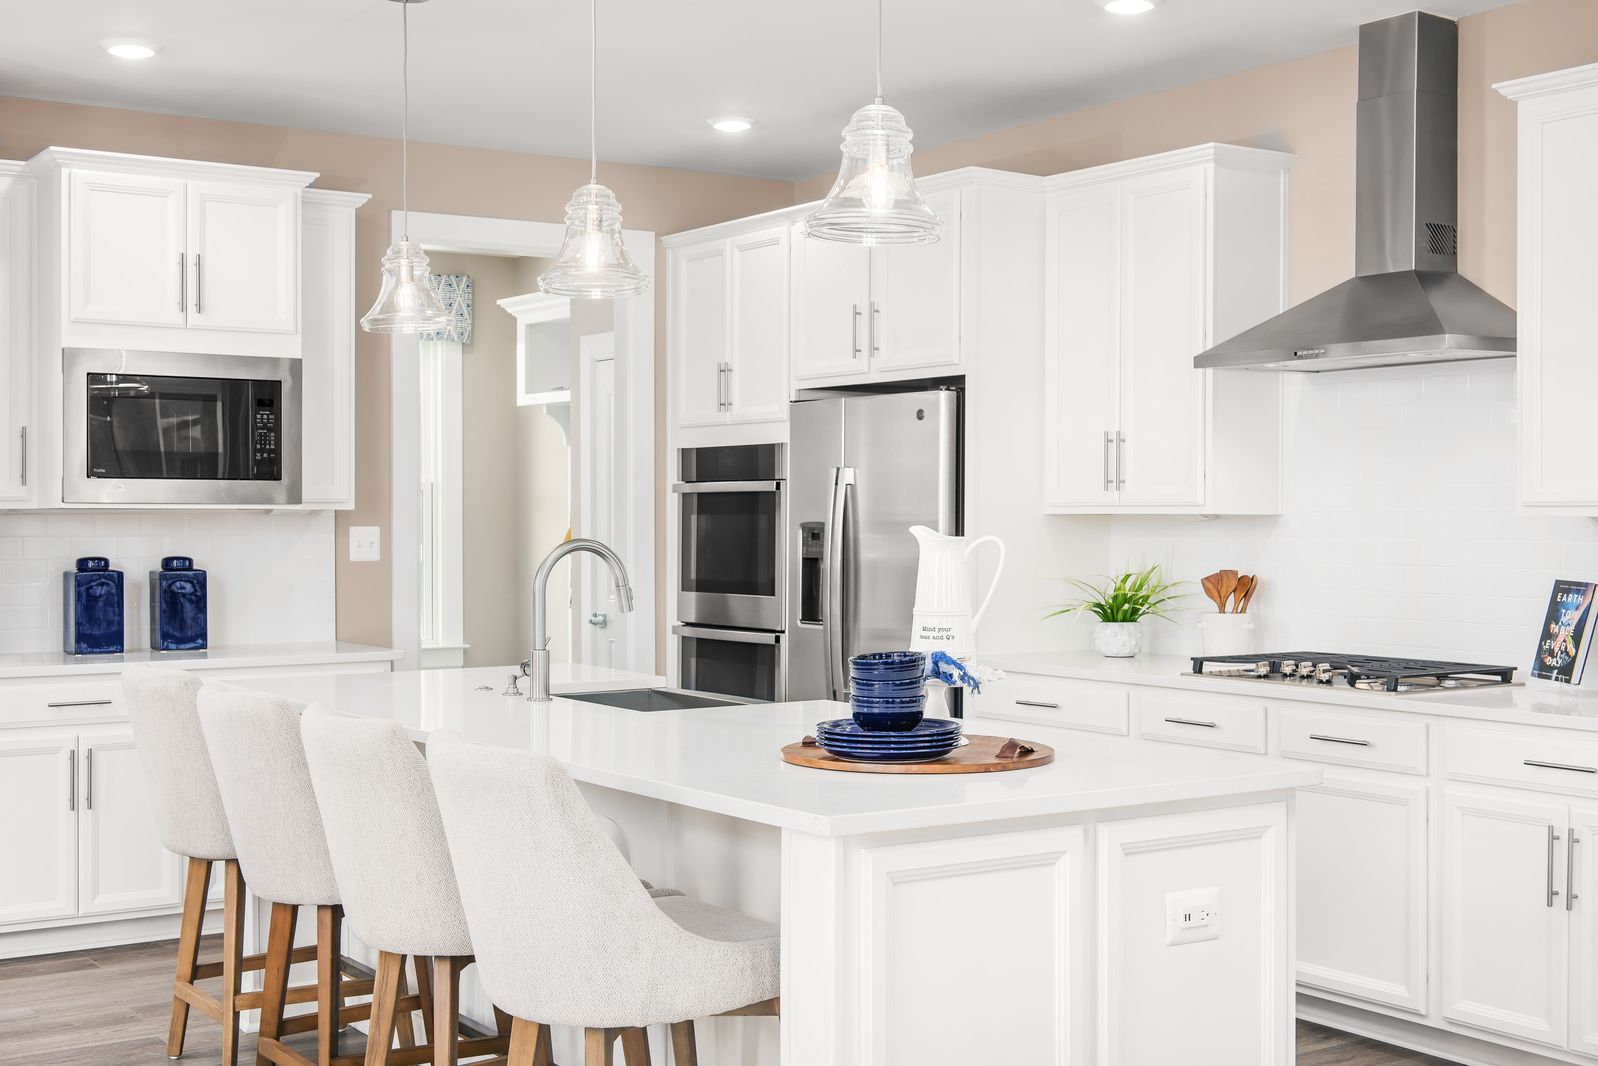 Kitchen featured in the Liberty By HeartlandHomes in Pittsburgh, PA